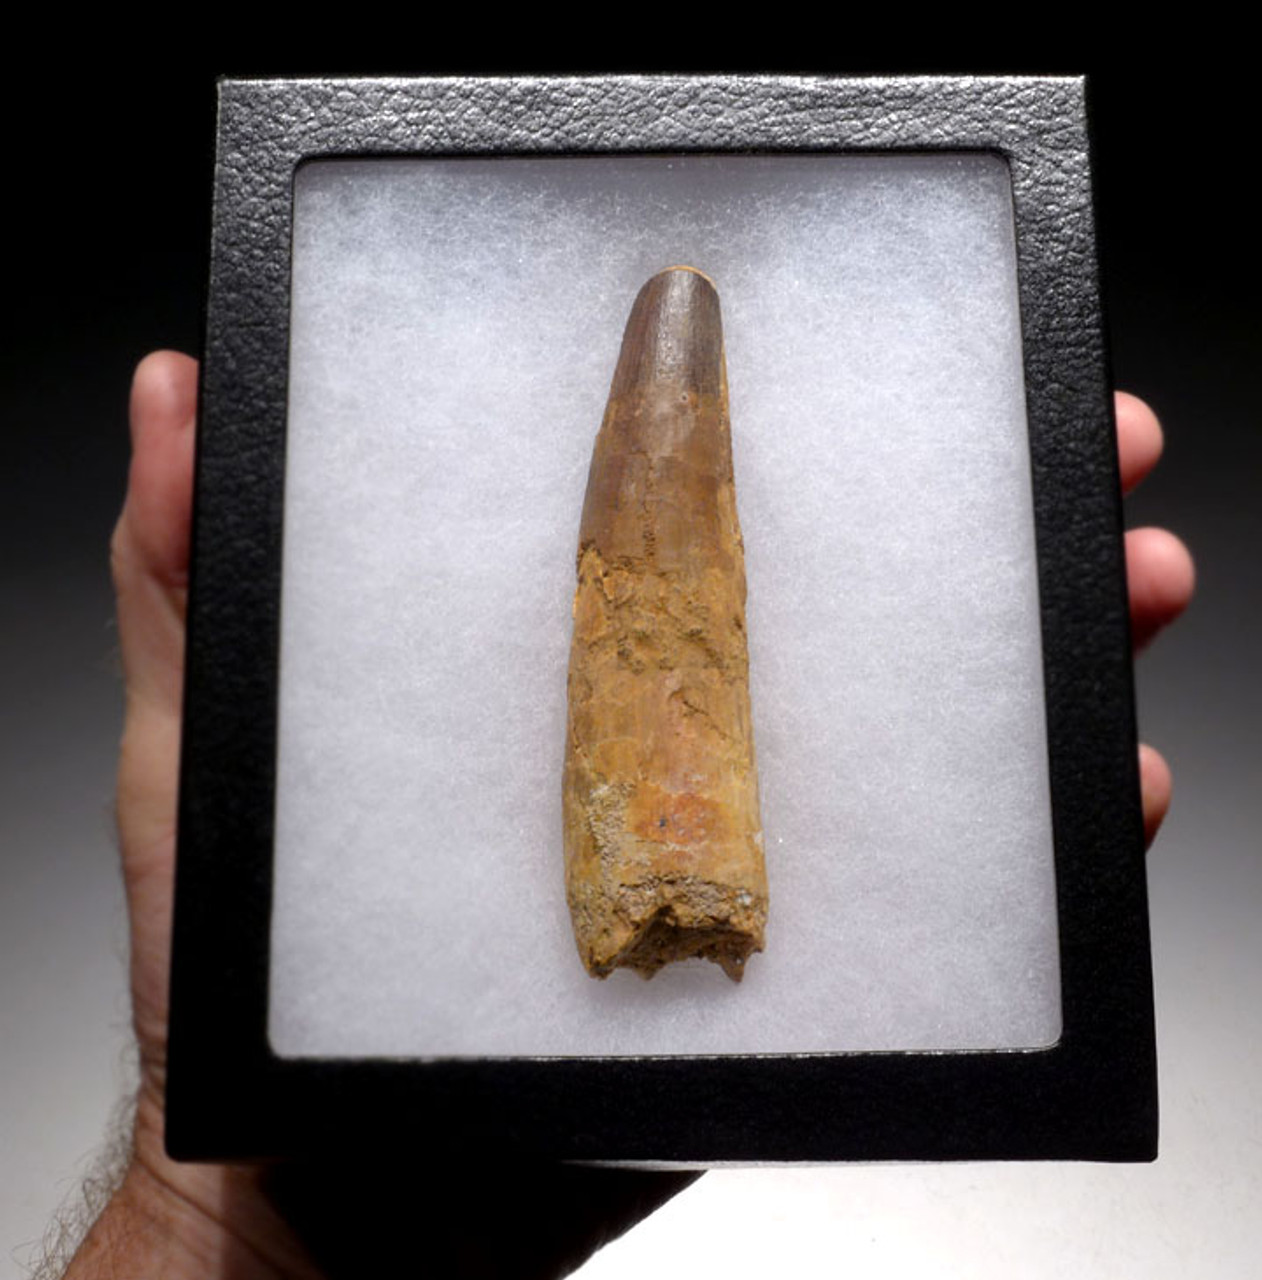 DT5-145 - RARE 4.5 INCH SPINOSAURUS DINOSAUR TOOTH WITH NATURAL FEEDING WEAR